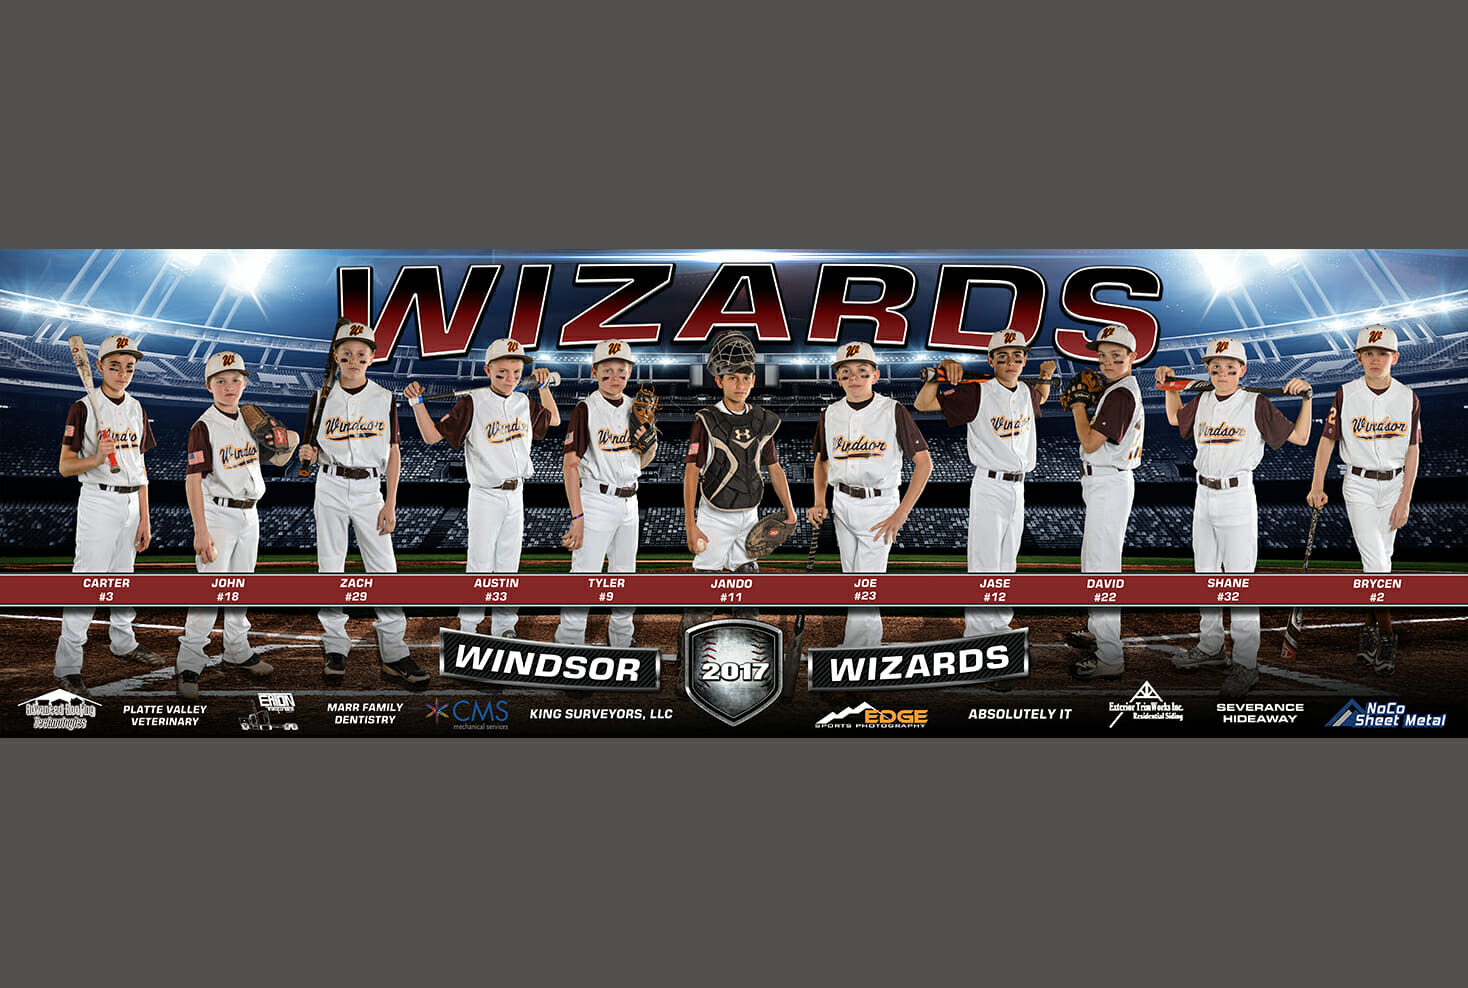 Sports photograph banner of Windsor Wizard baseball team